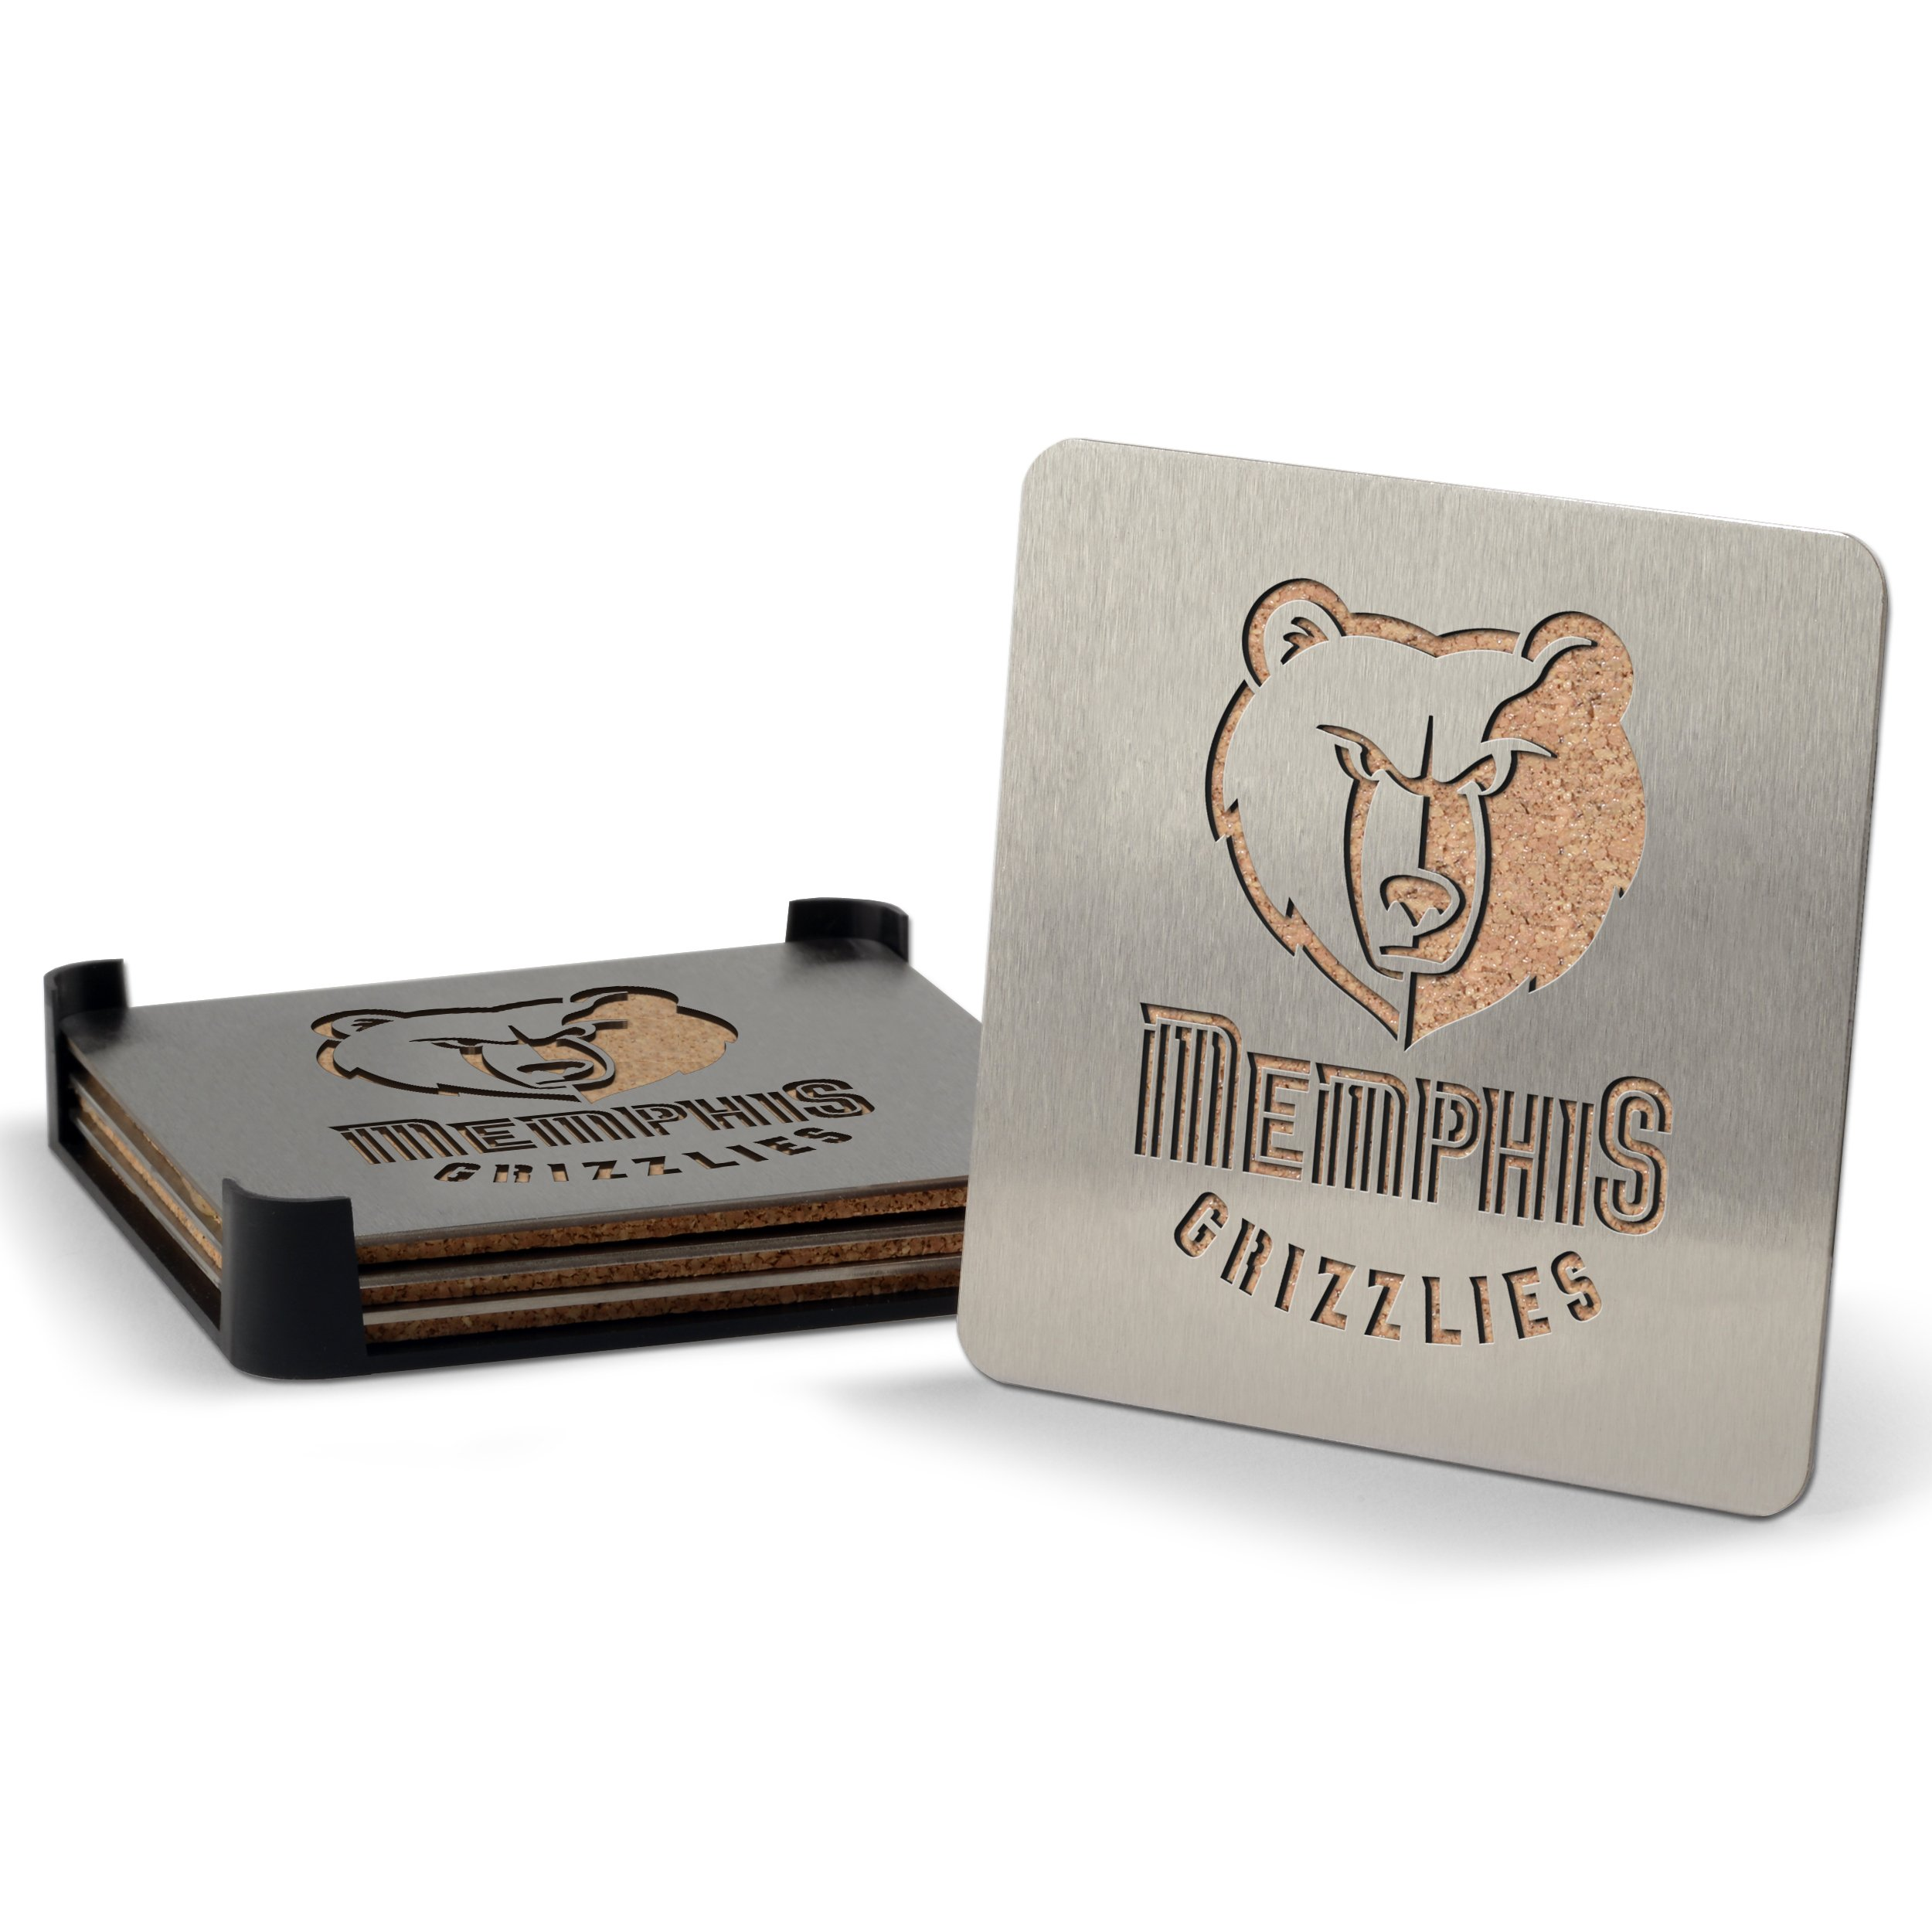 NBA Memphis Grizzlies Boasters, Heavy Duty Stainless Steel Coasters, Set of 4